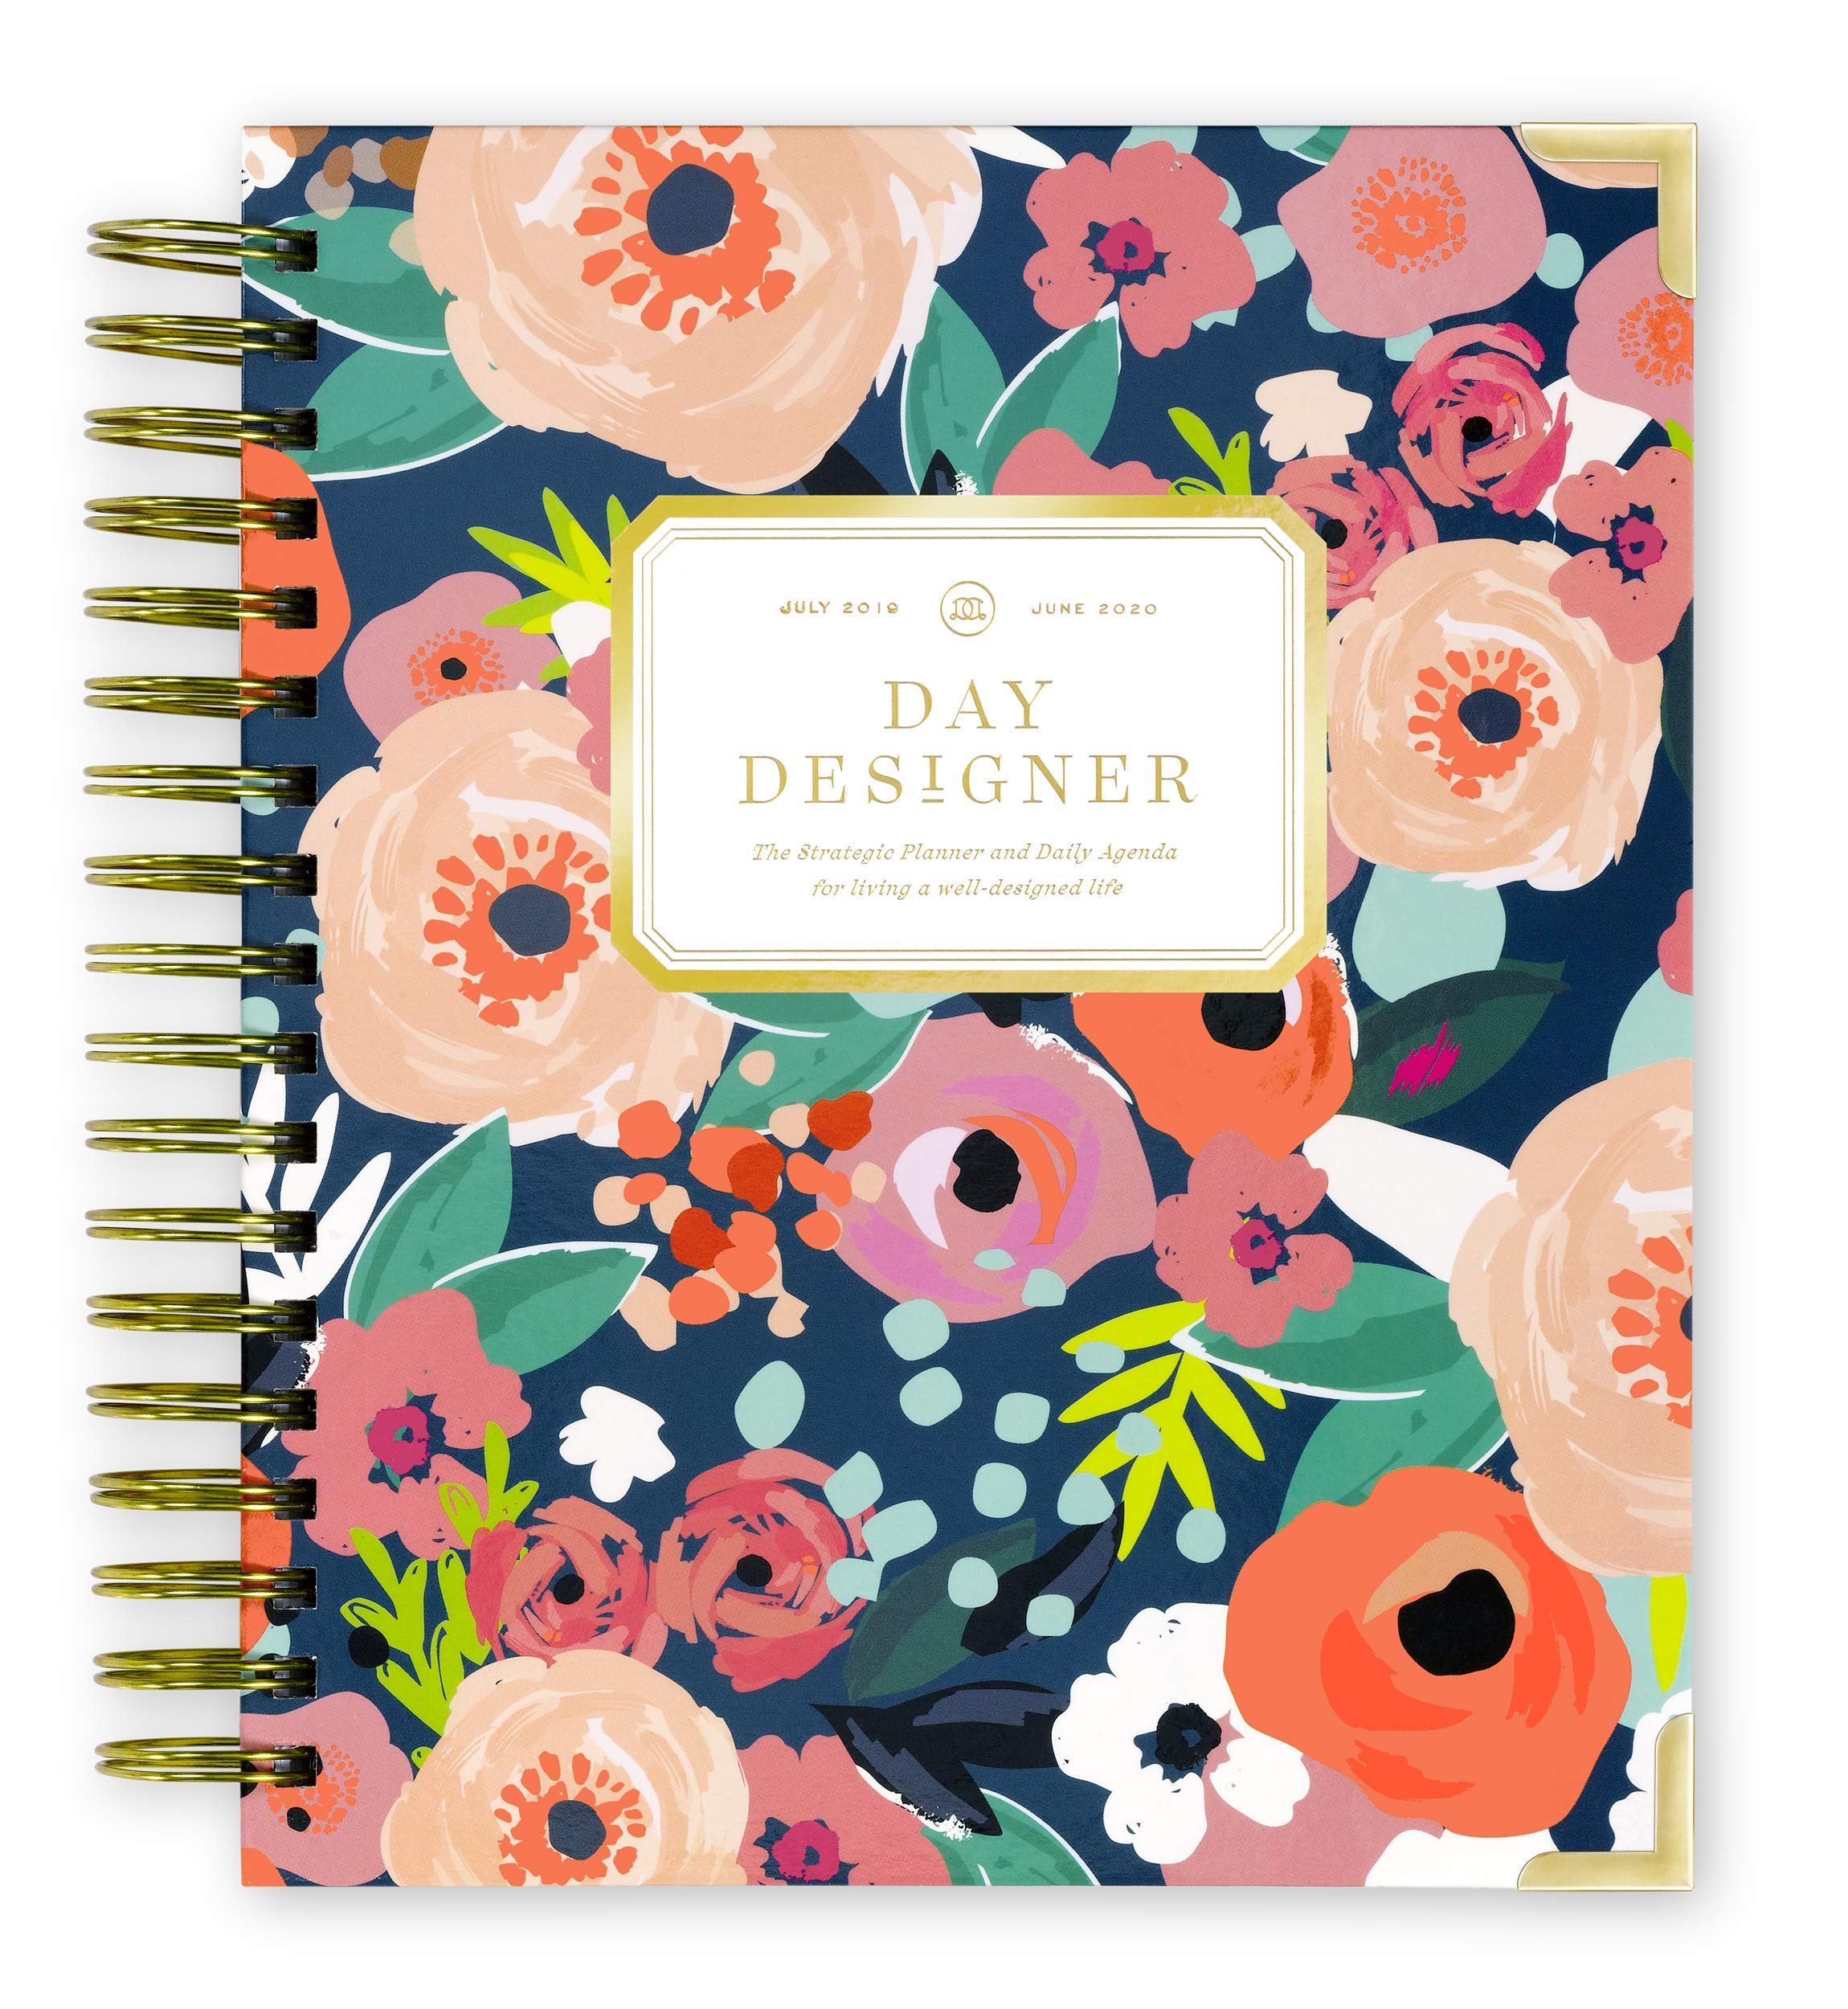 Day Designer 2019-2020 Daily Life Planner and Agenda, Hardcover, Twin-Wire Binding, 9'' x 9.75'', Secret Garden